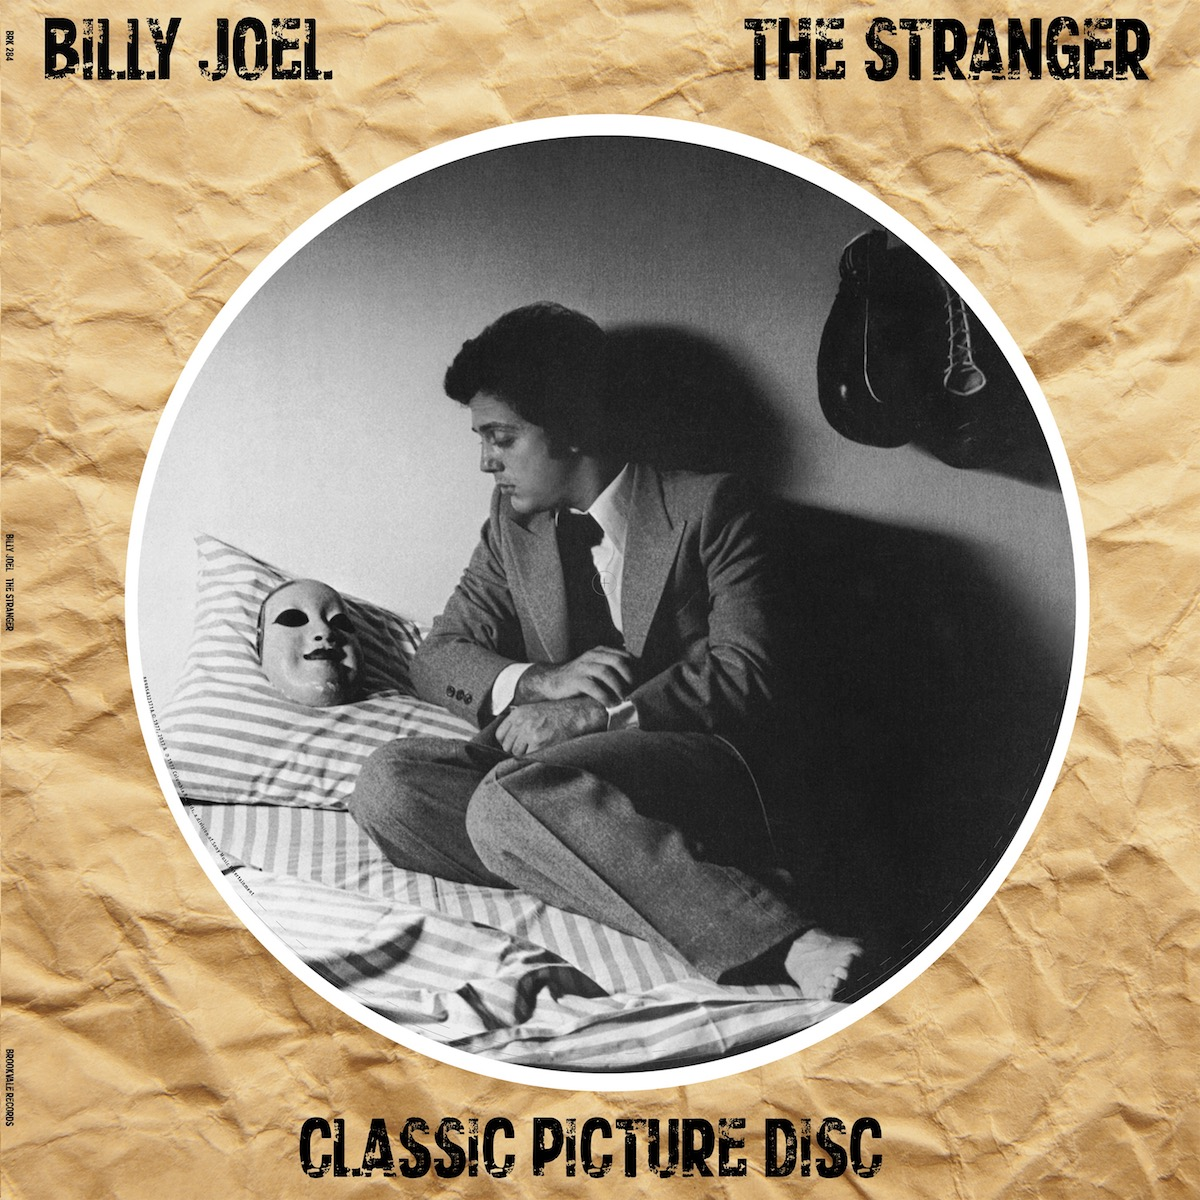 Billy Joel - The Stranger [Picture Disc LP]